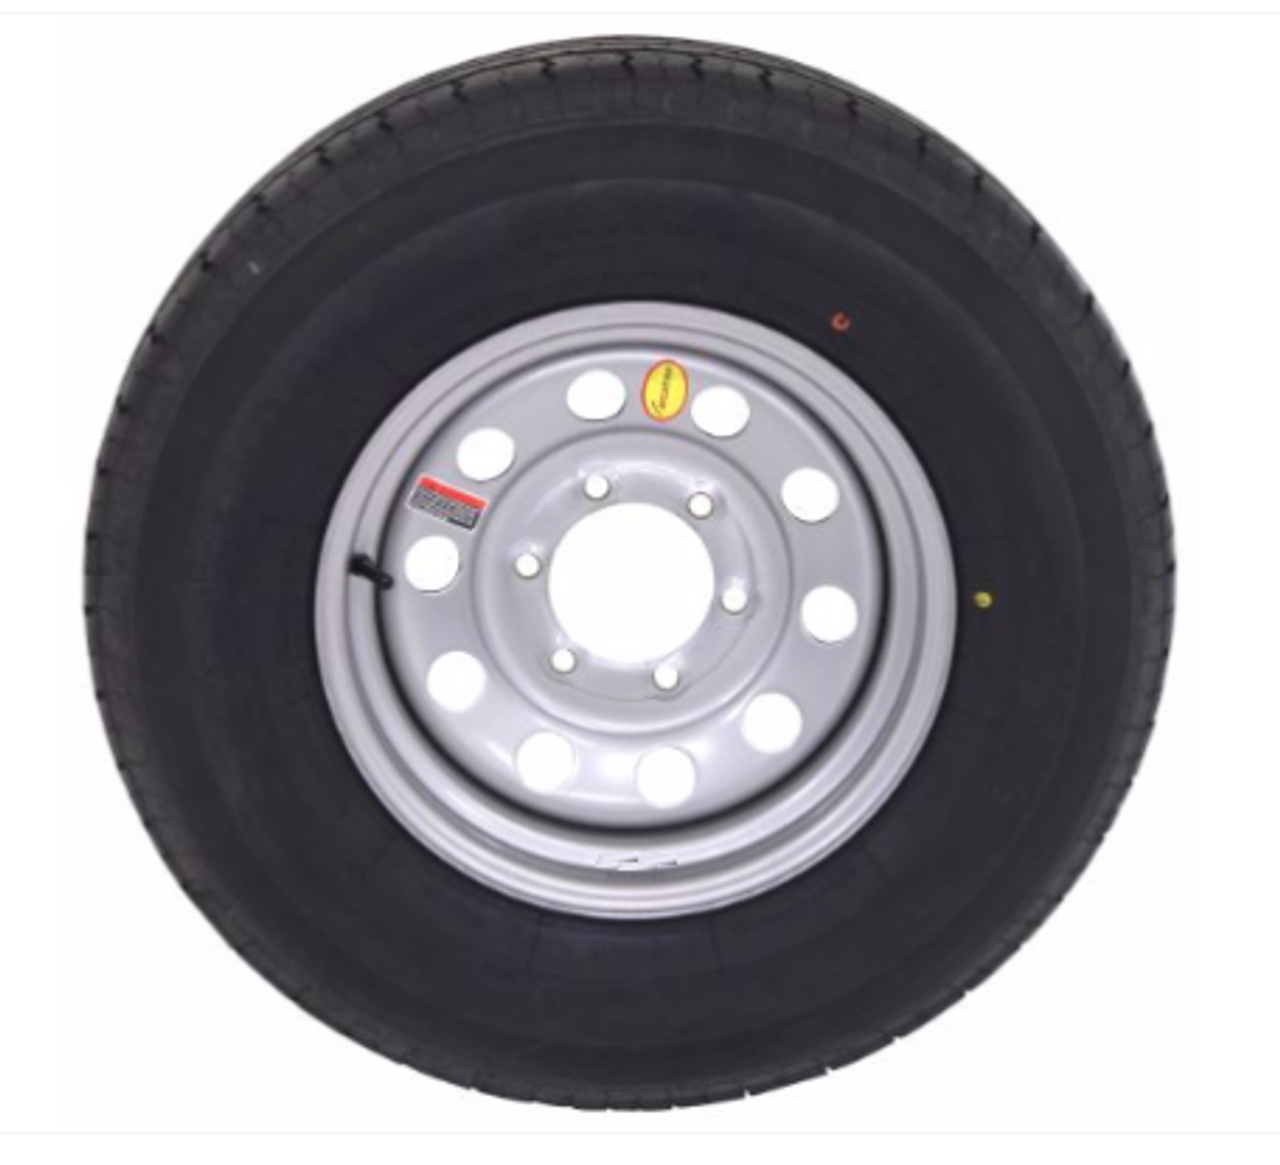 ST225/75R15 10 PLY Contender radial trailer tire mounted on 6 lug silver mod wheels